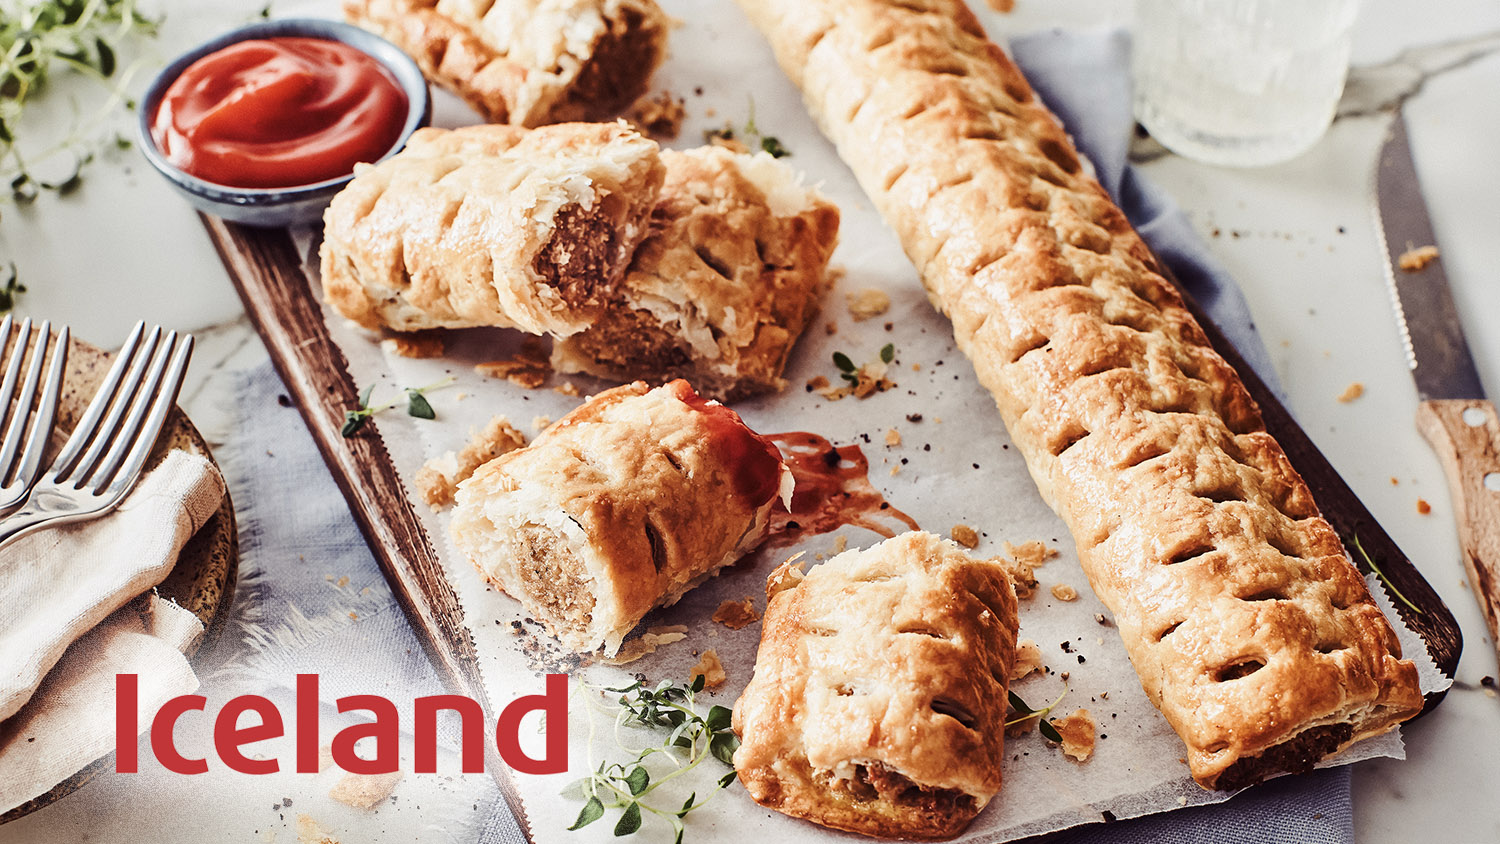 Footlong Vegan Sausage Rolls Just Launched at Iceland